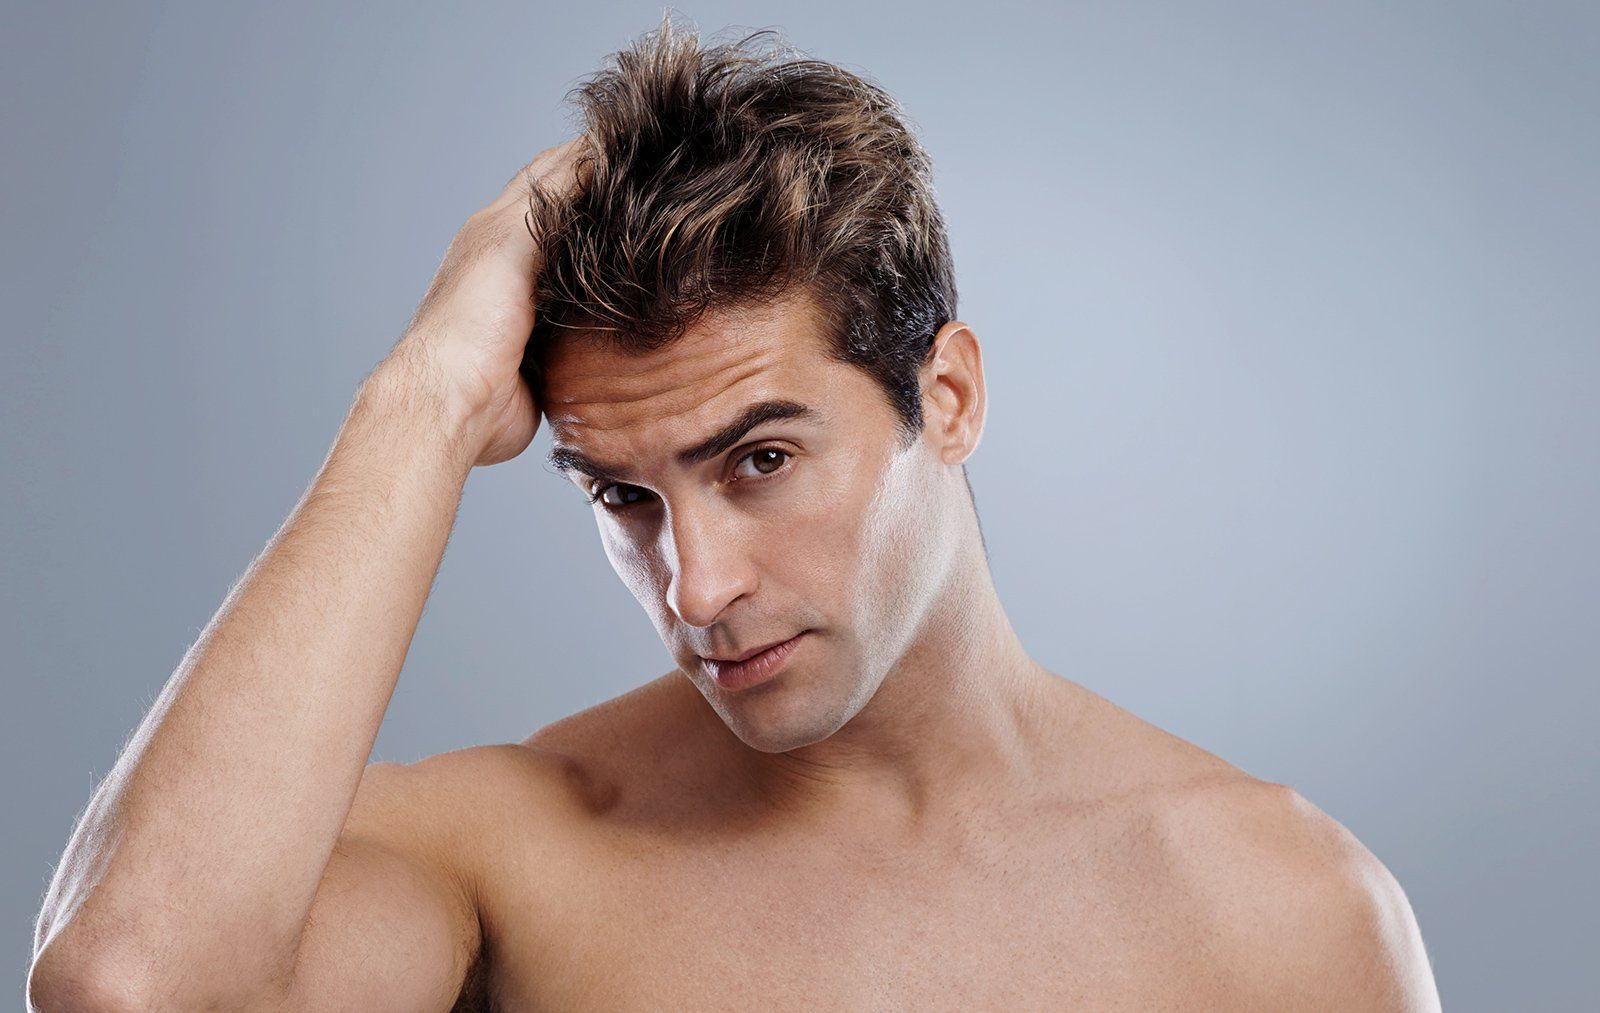 How To Apply Your Hair Product Men S Health